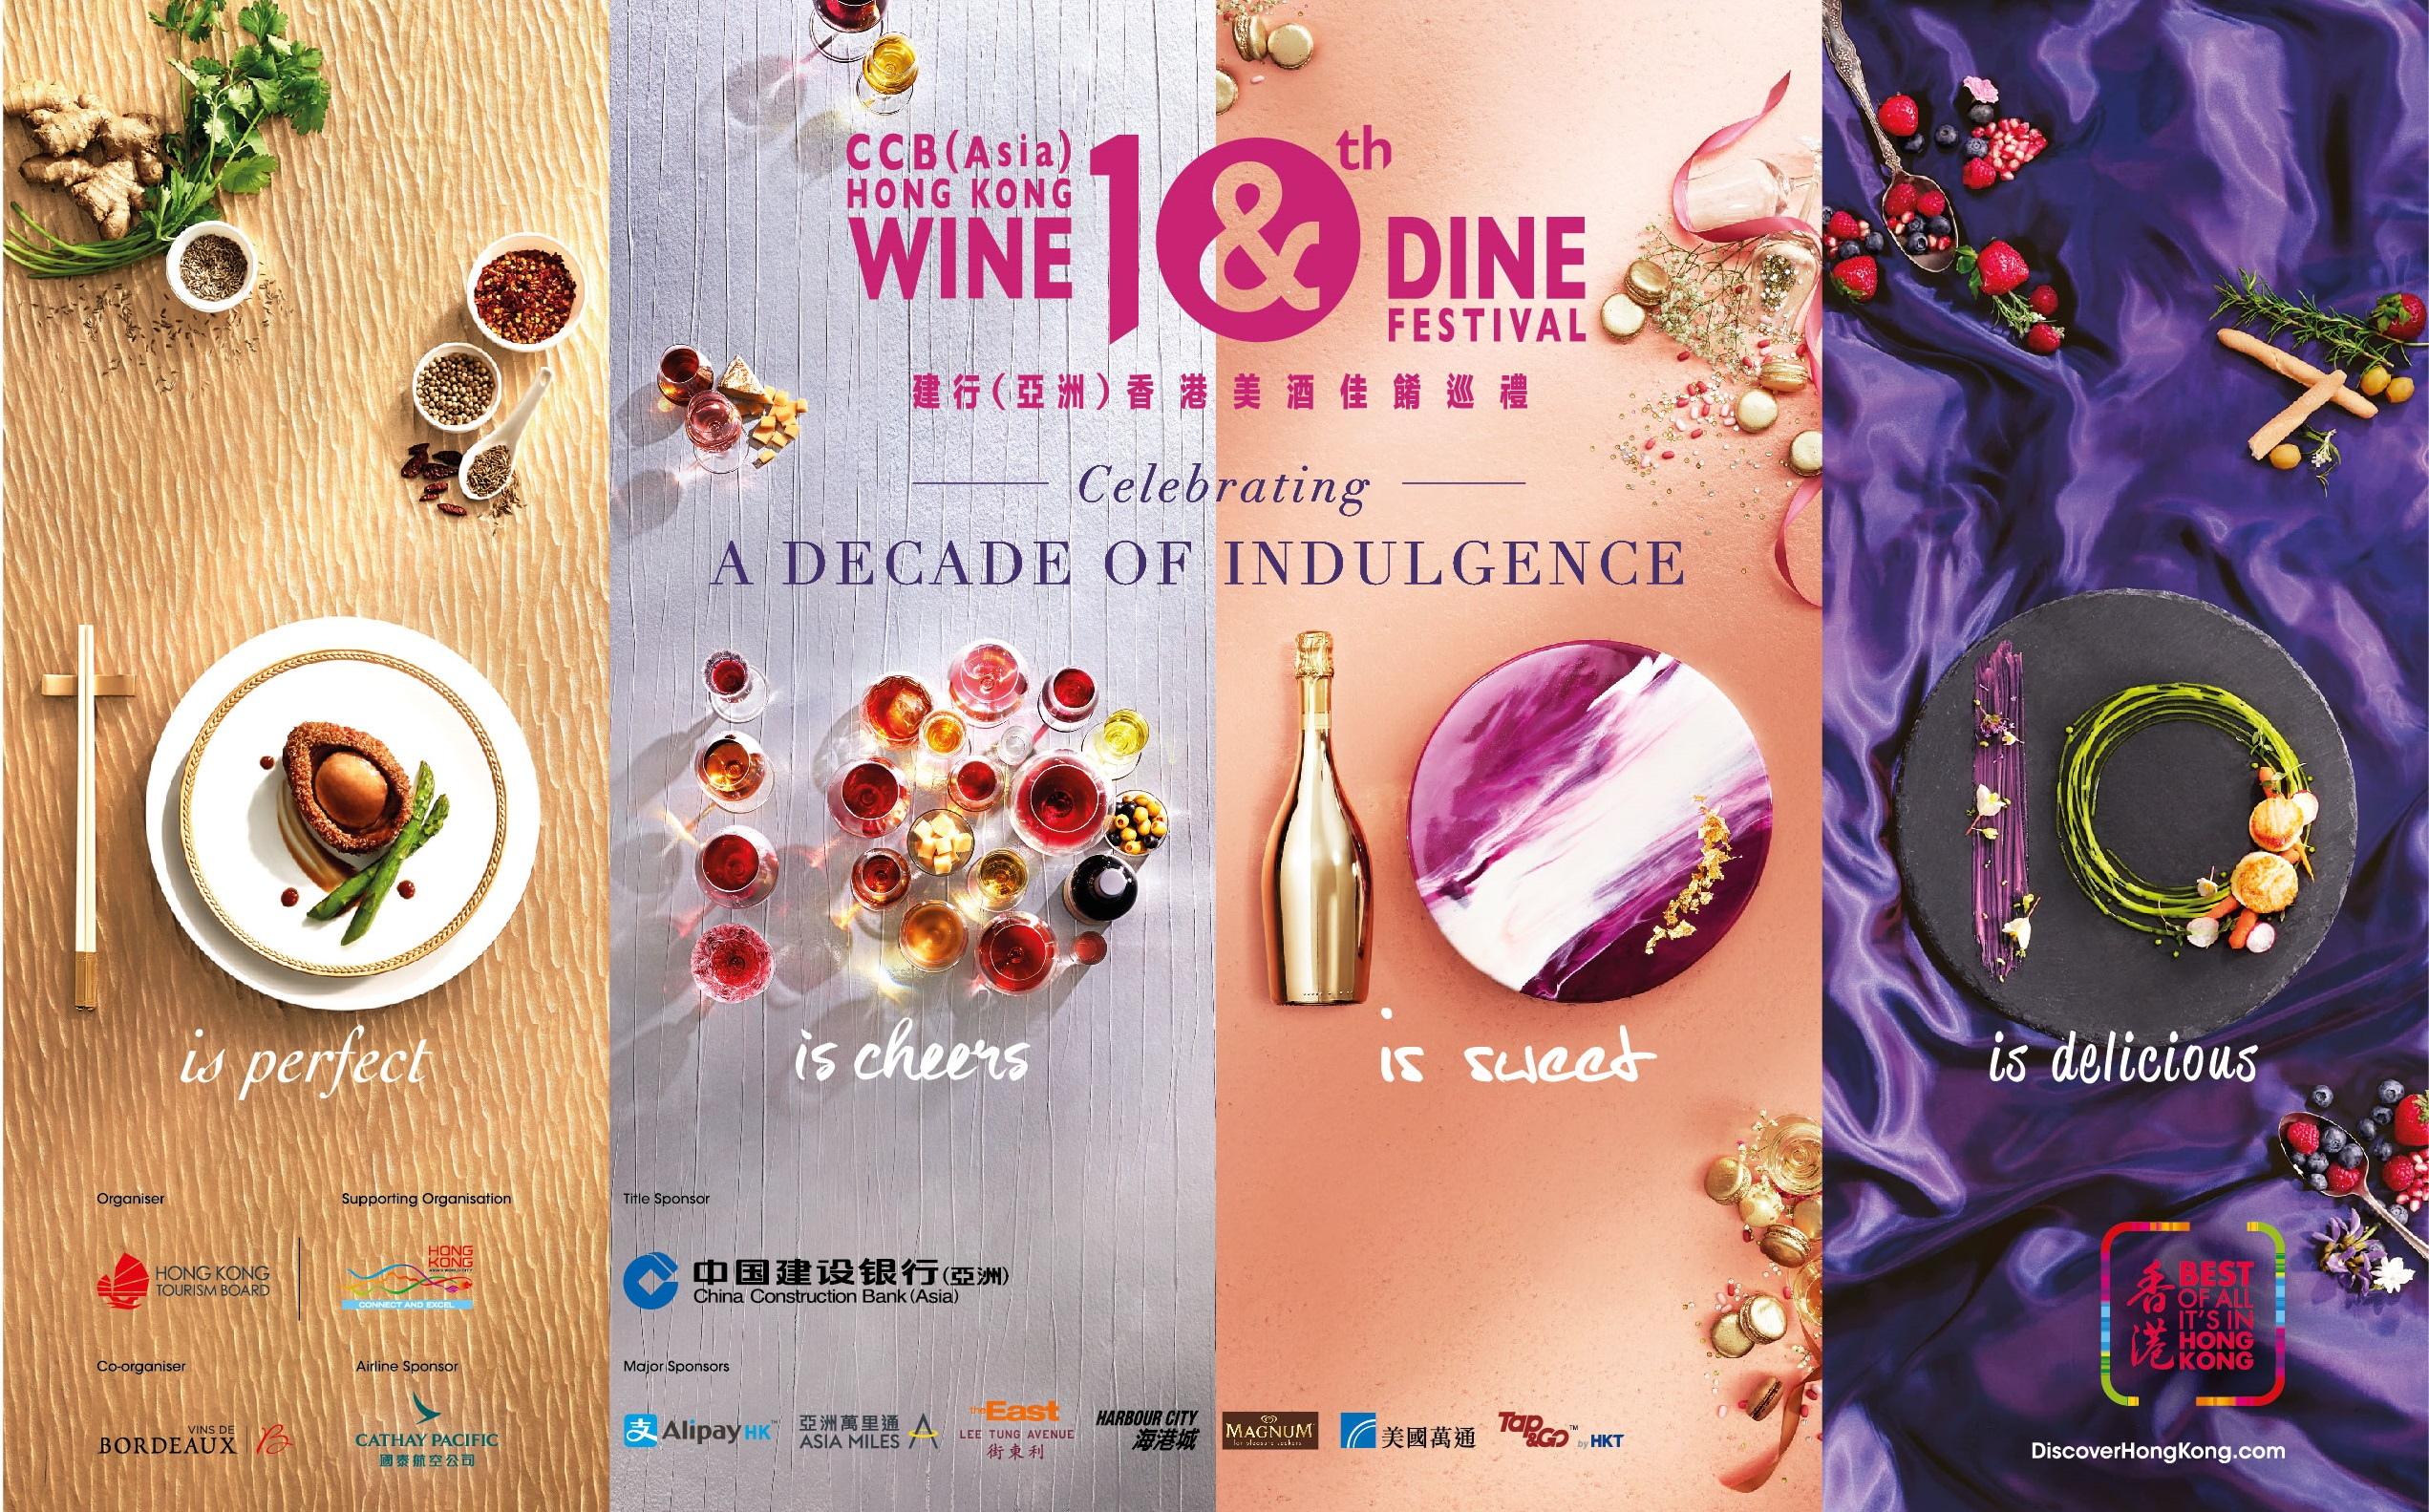 CCB Asia Hong Kong Wine and Dine Festival